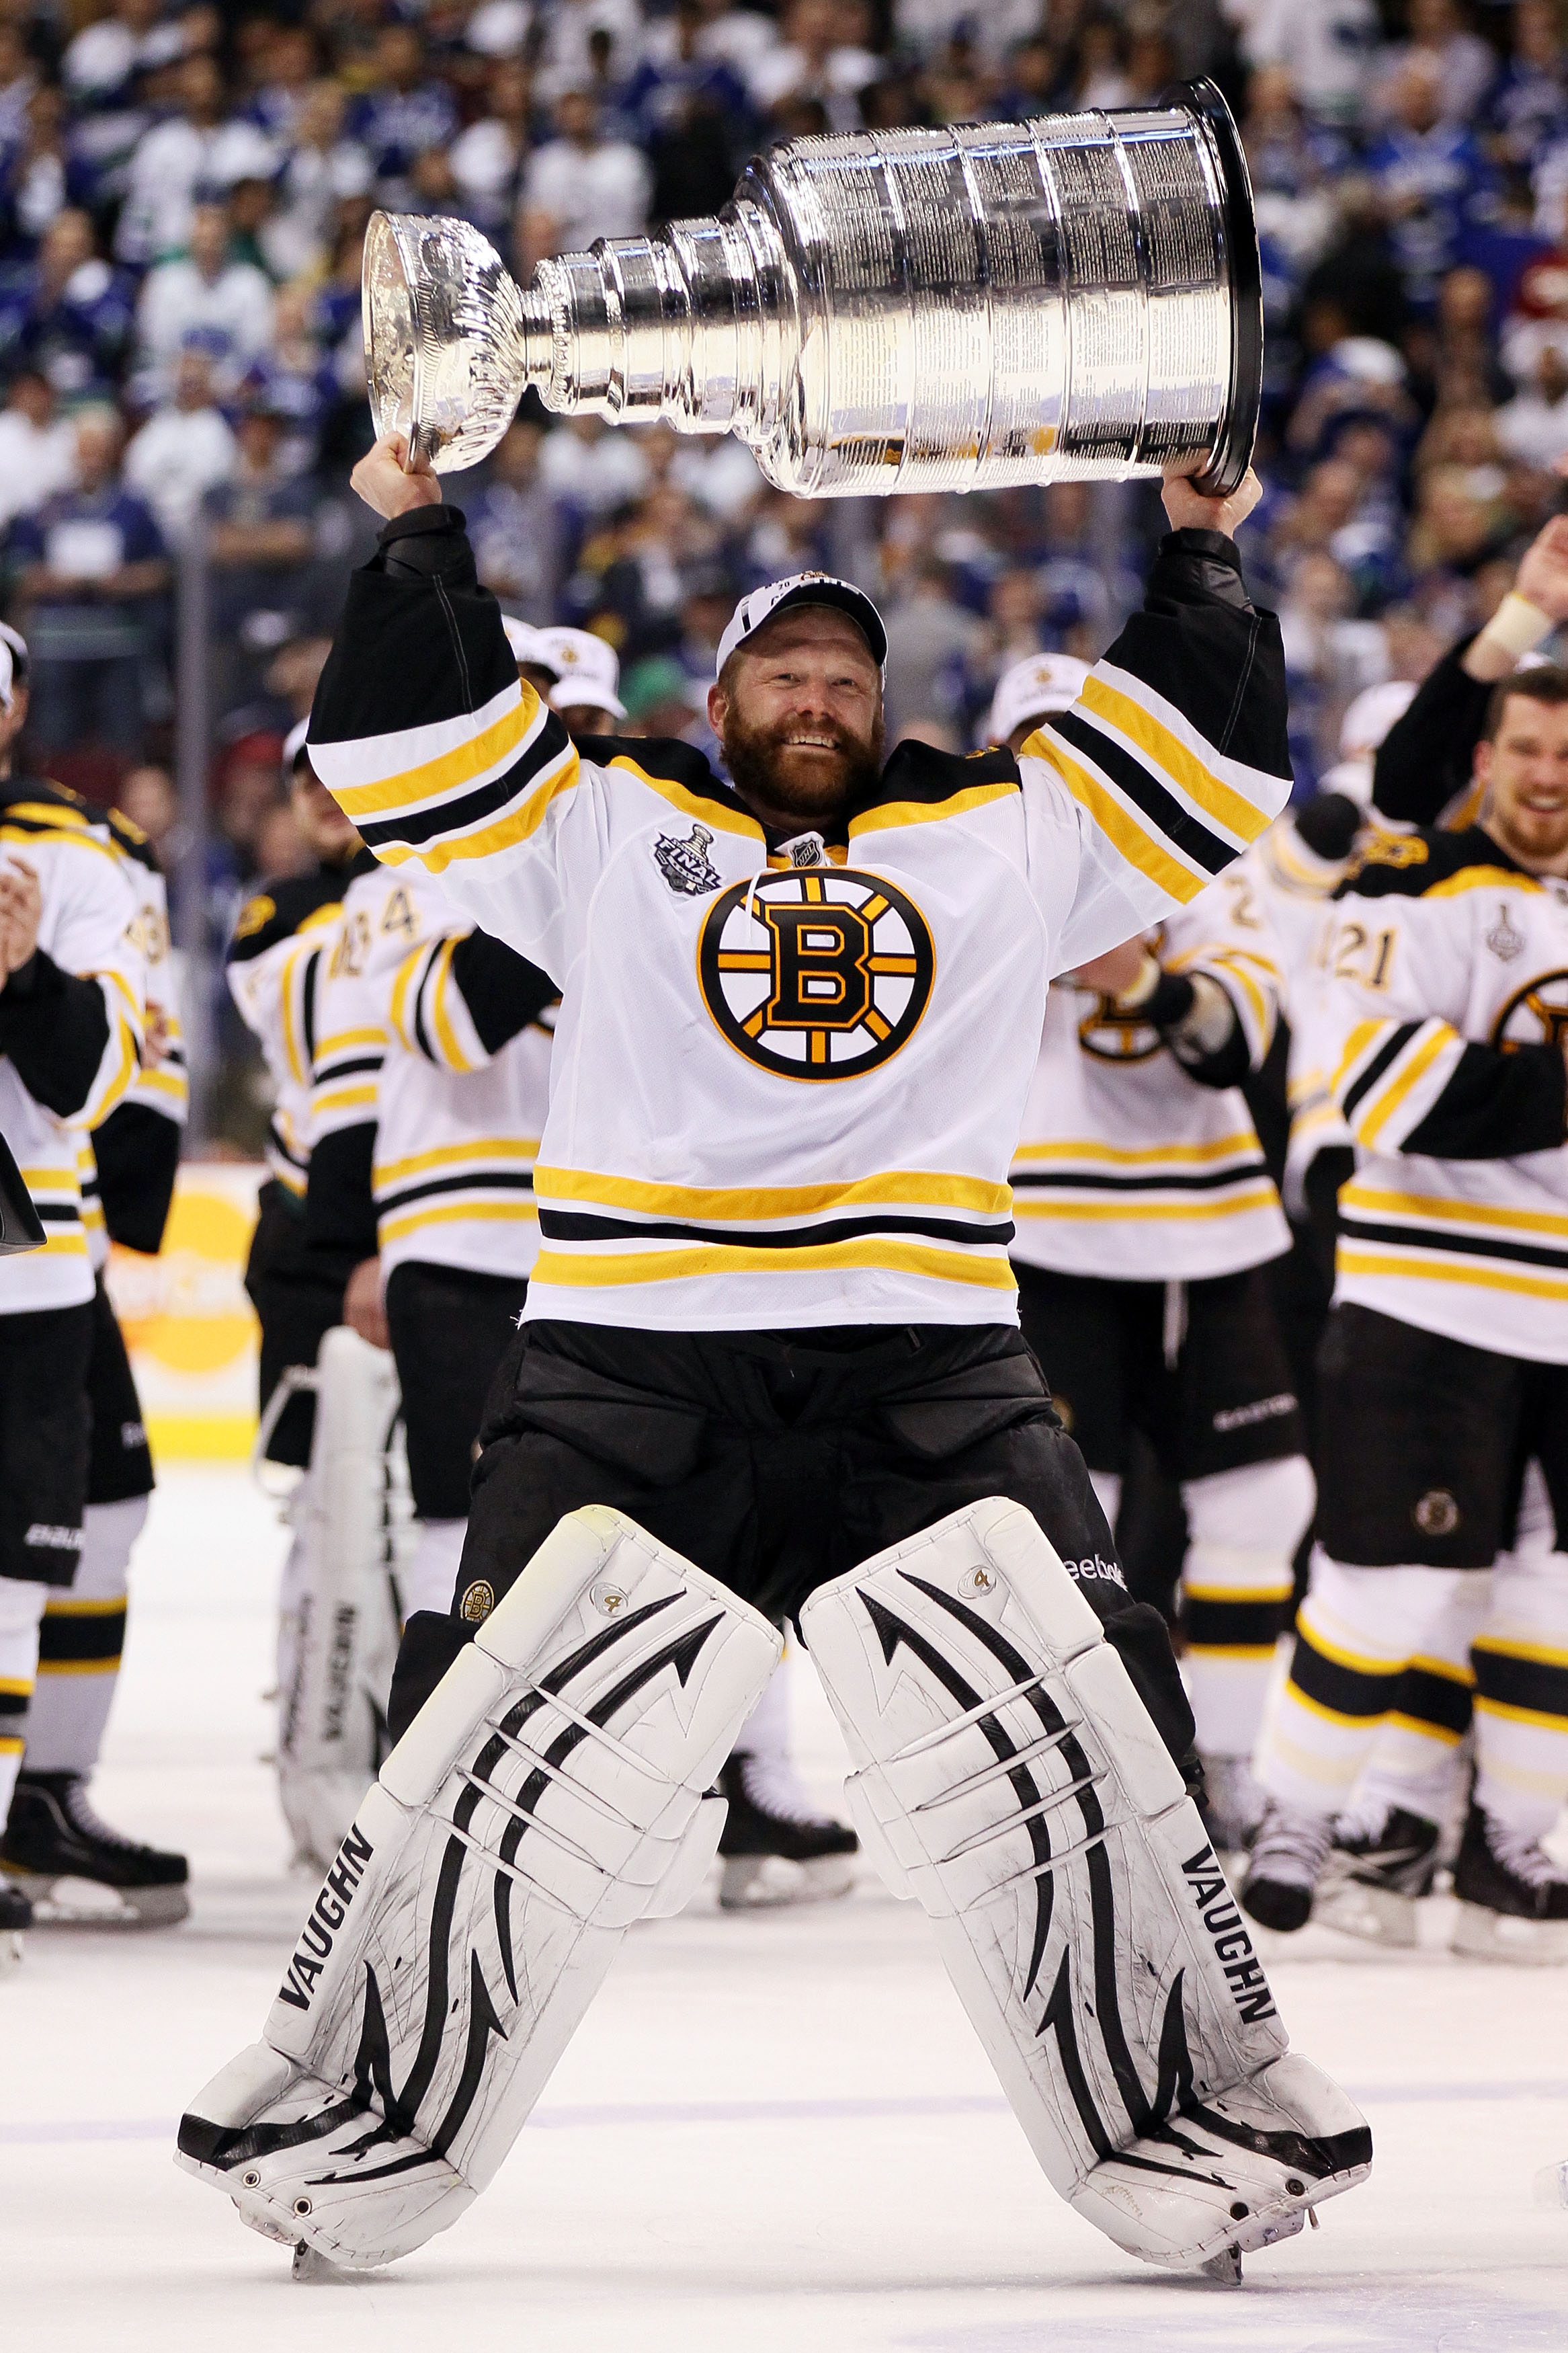 Tim Thomas hoist's the Stanley Cup after a 4-0 victory in game seven over the Vancouver Canucks